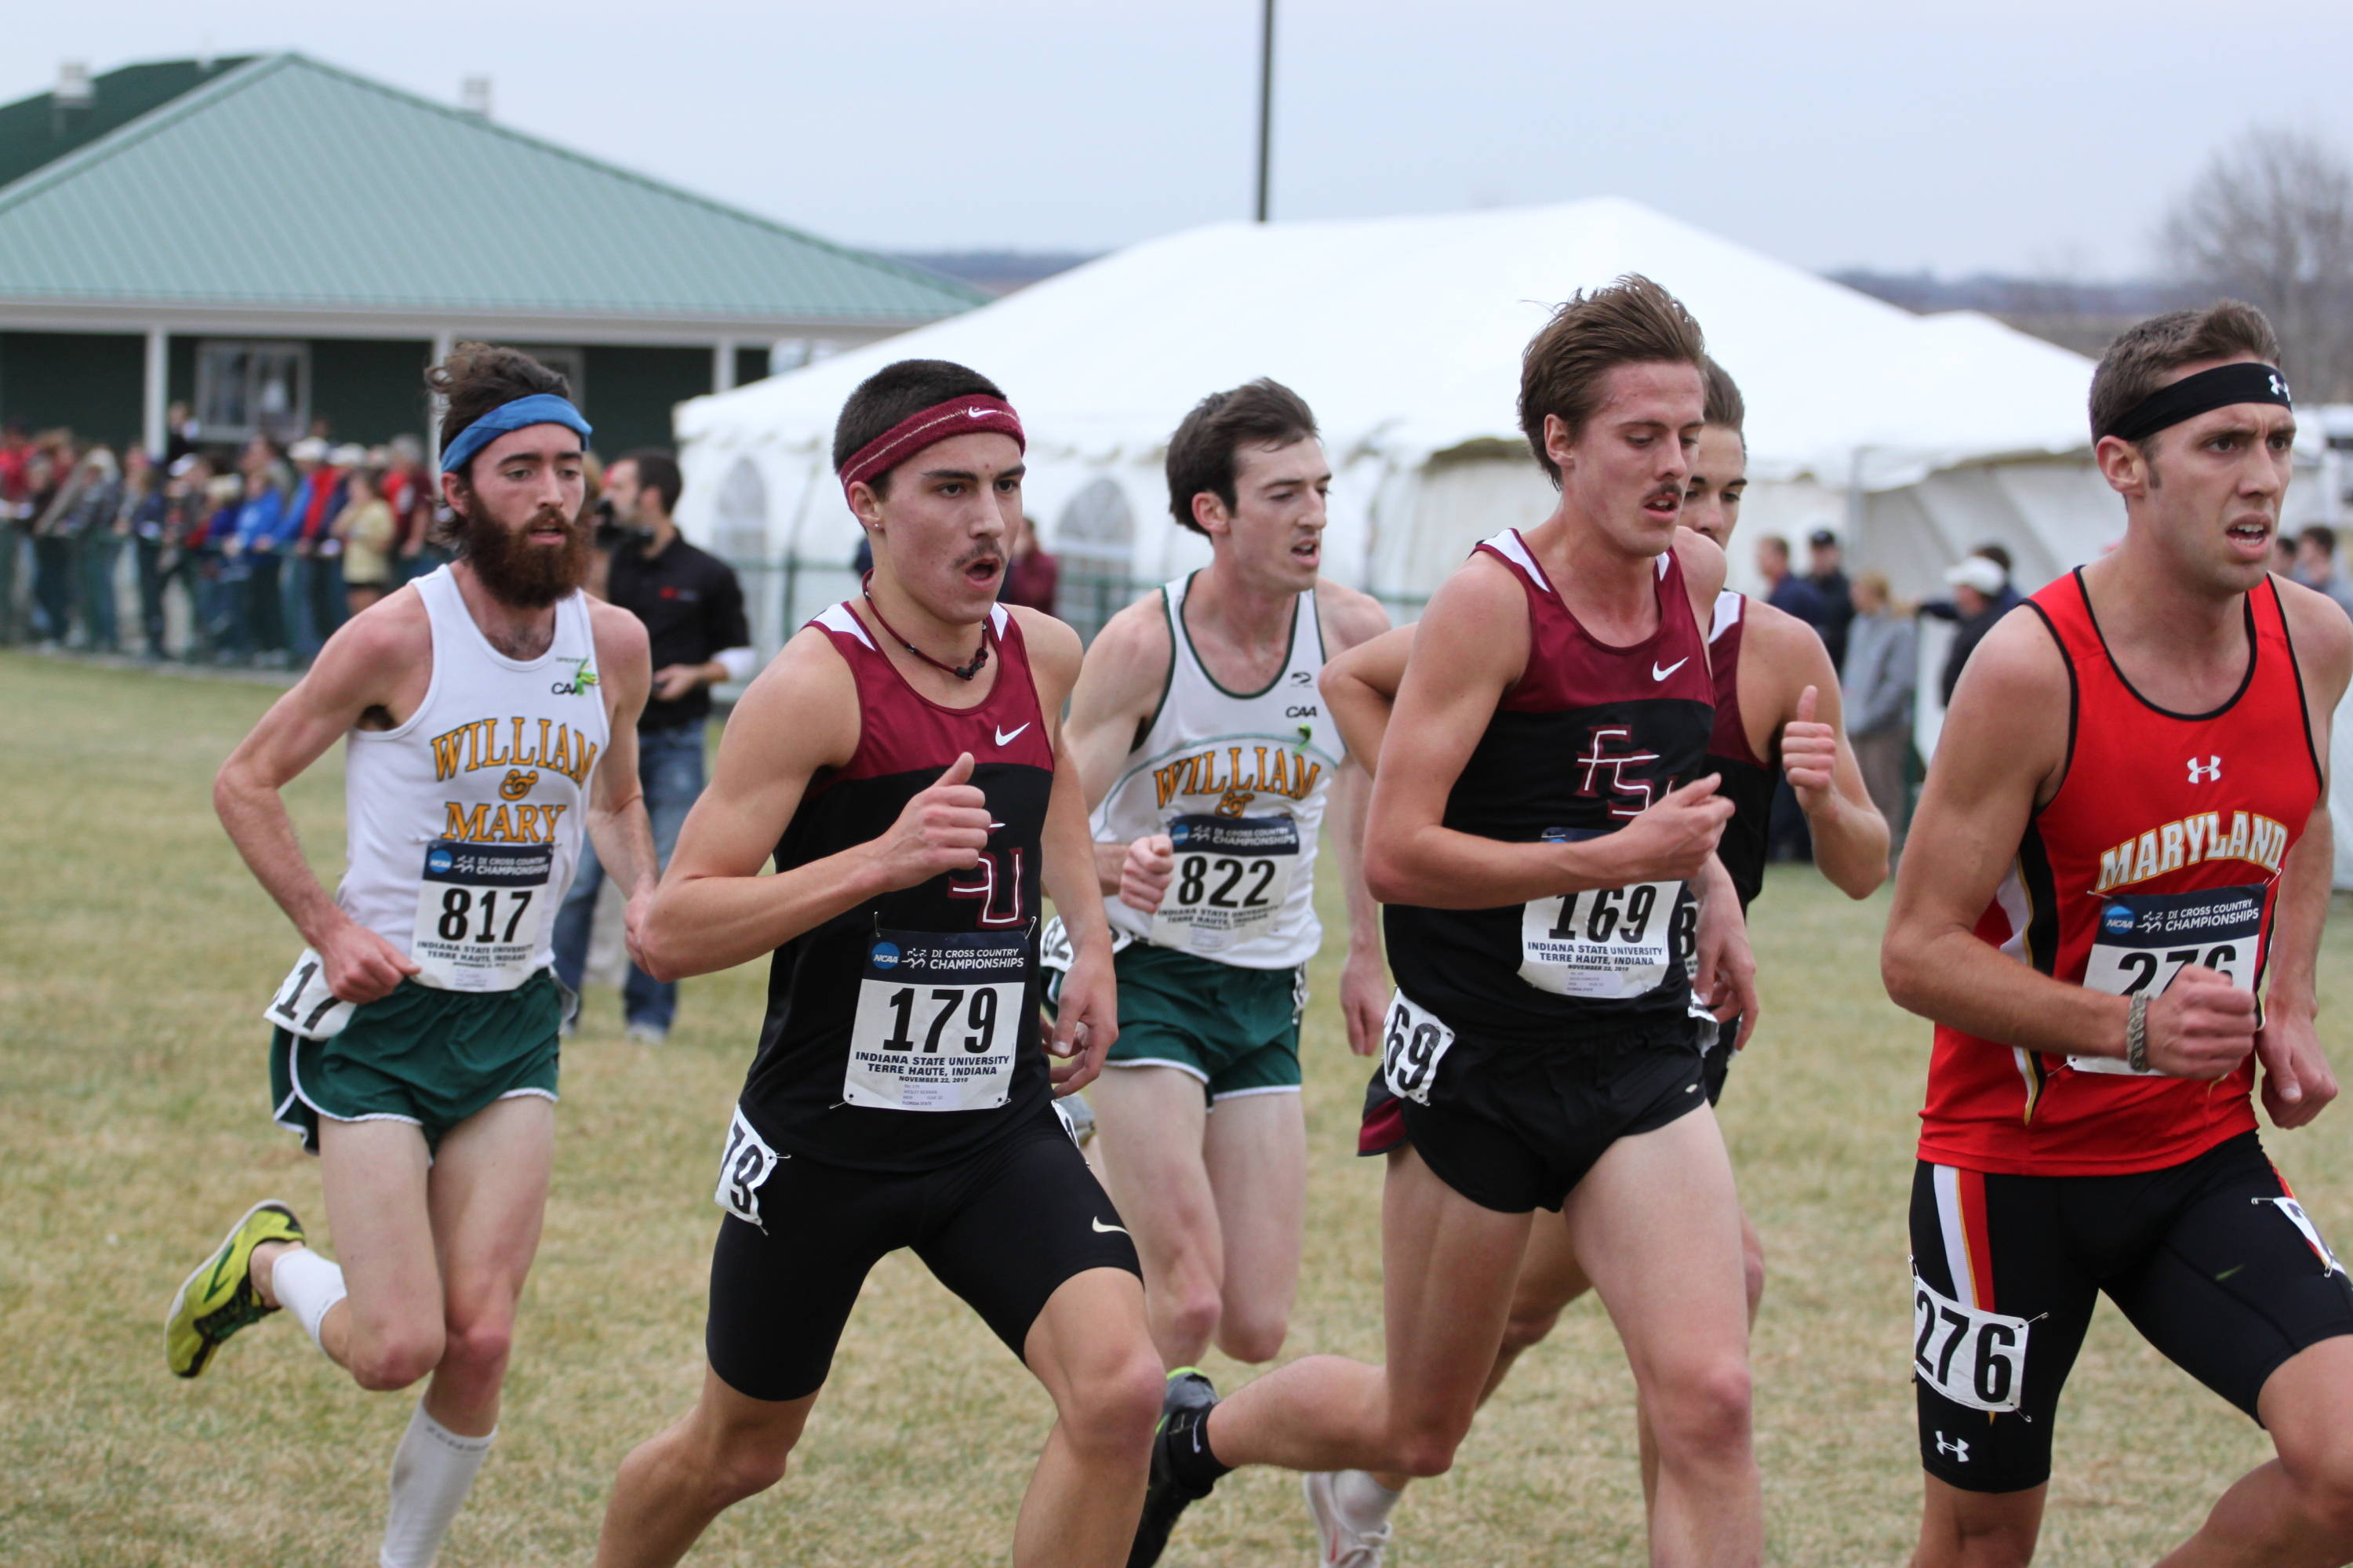 Wes Rickman and David Forrester pass the midway point side-by-side and picked it up from there as the FSU men posted their best finish ever.